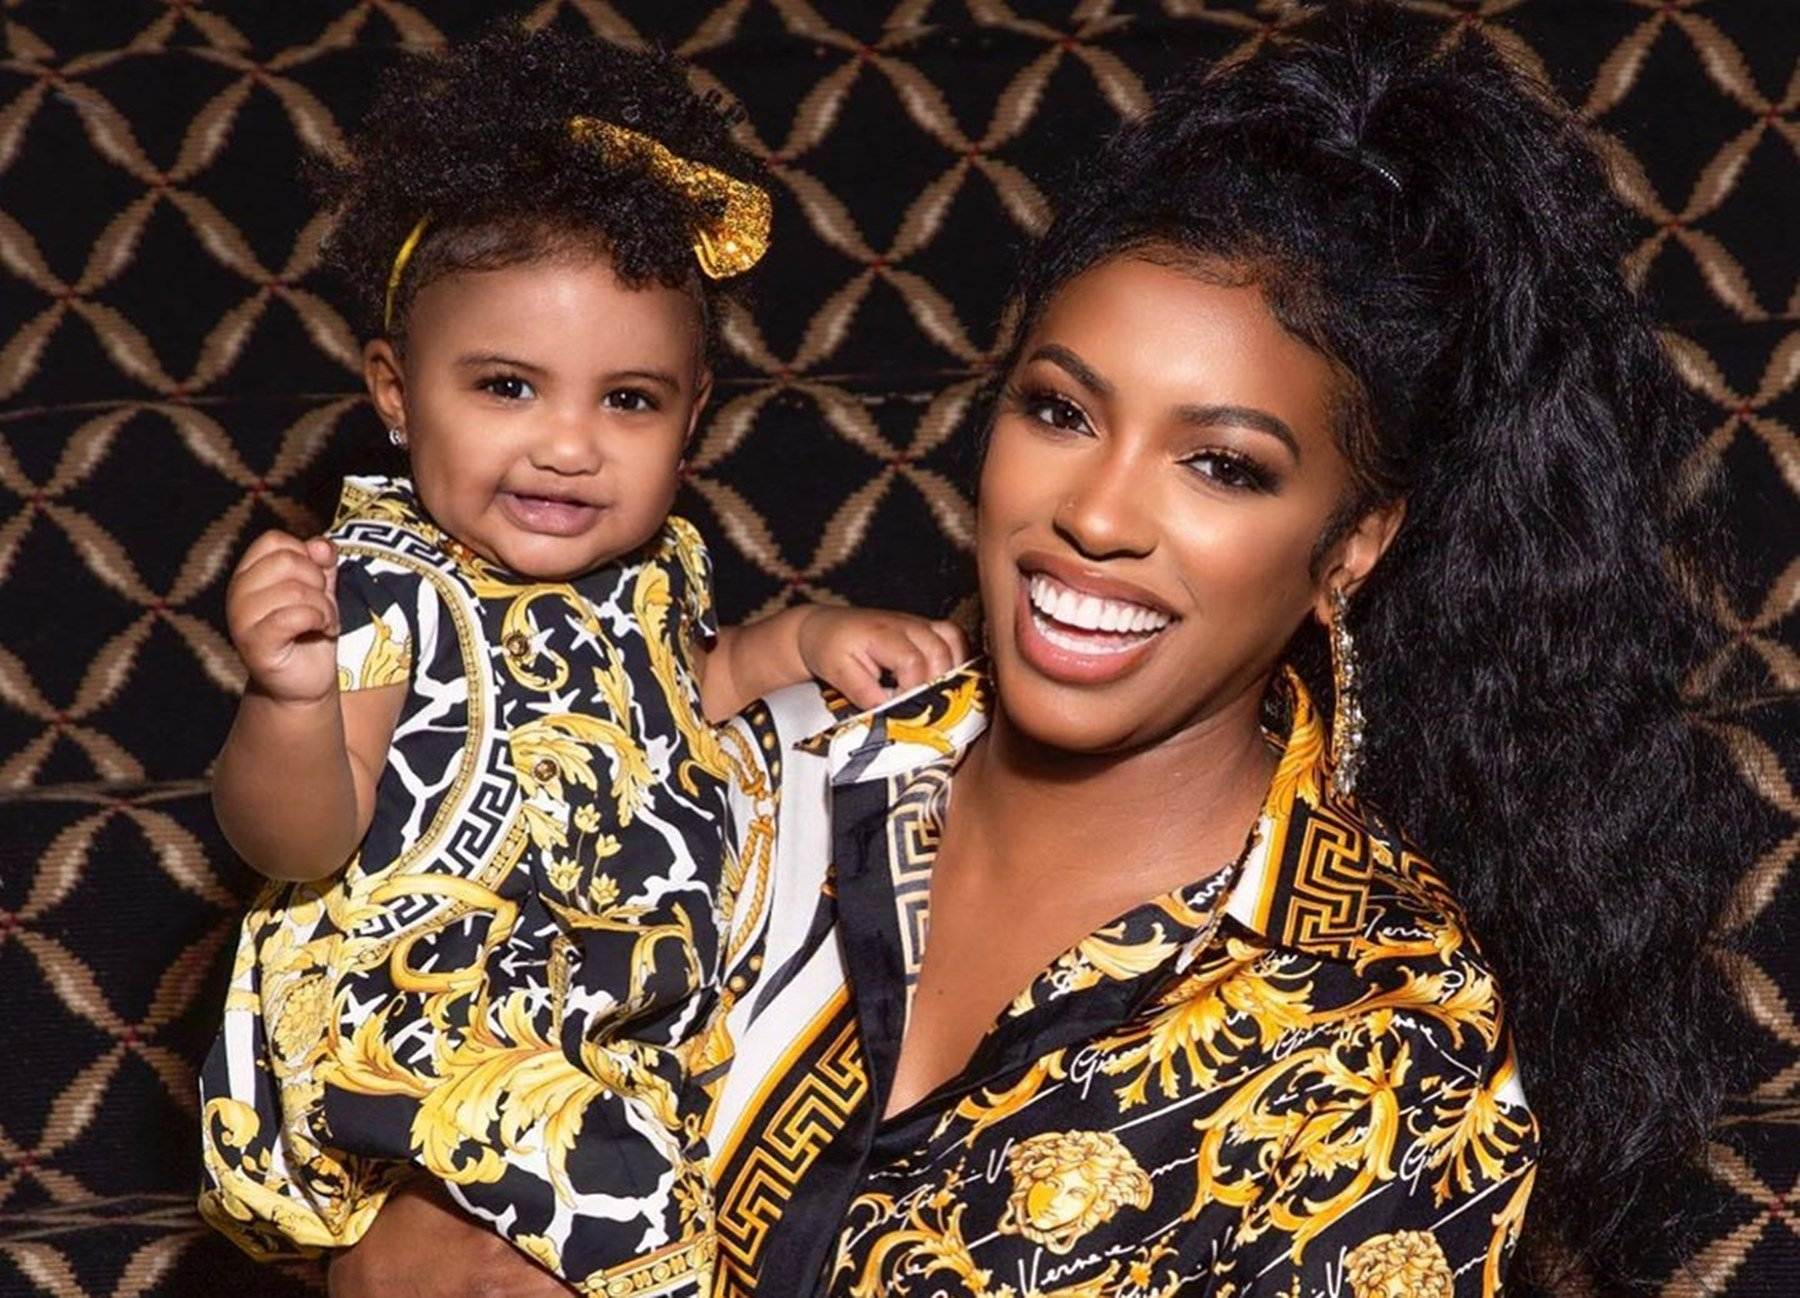 Porsha Williams Will Make Your Day With This Video Featuring Her Baby Girl, Pilar Jhena